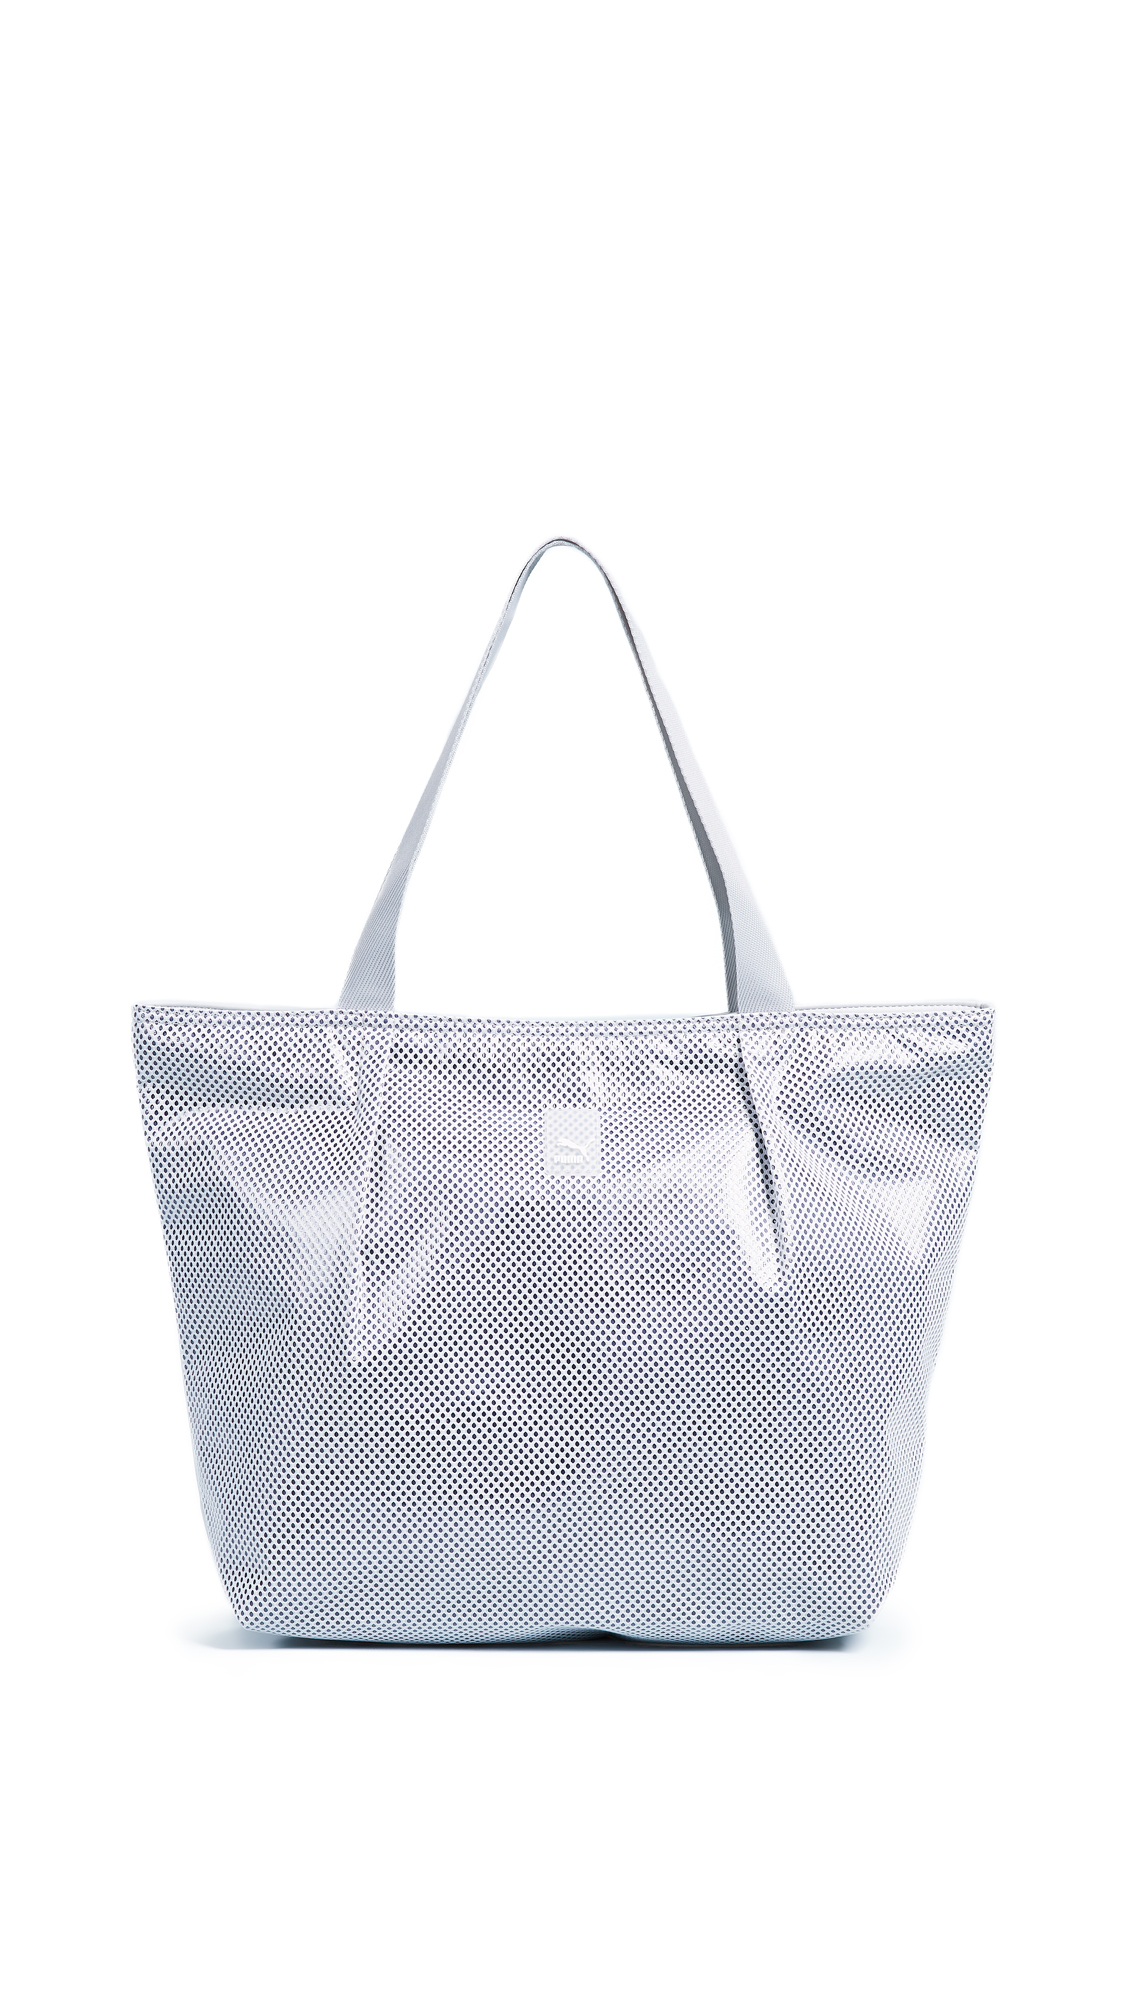 ebb060400a PUMA PRIME LARGE SHOPPER TOTE